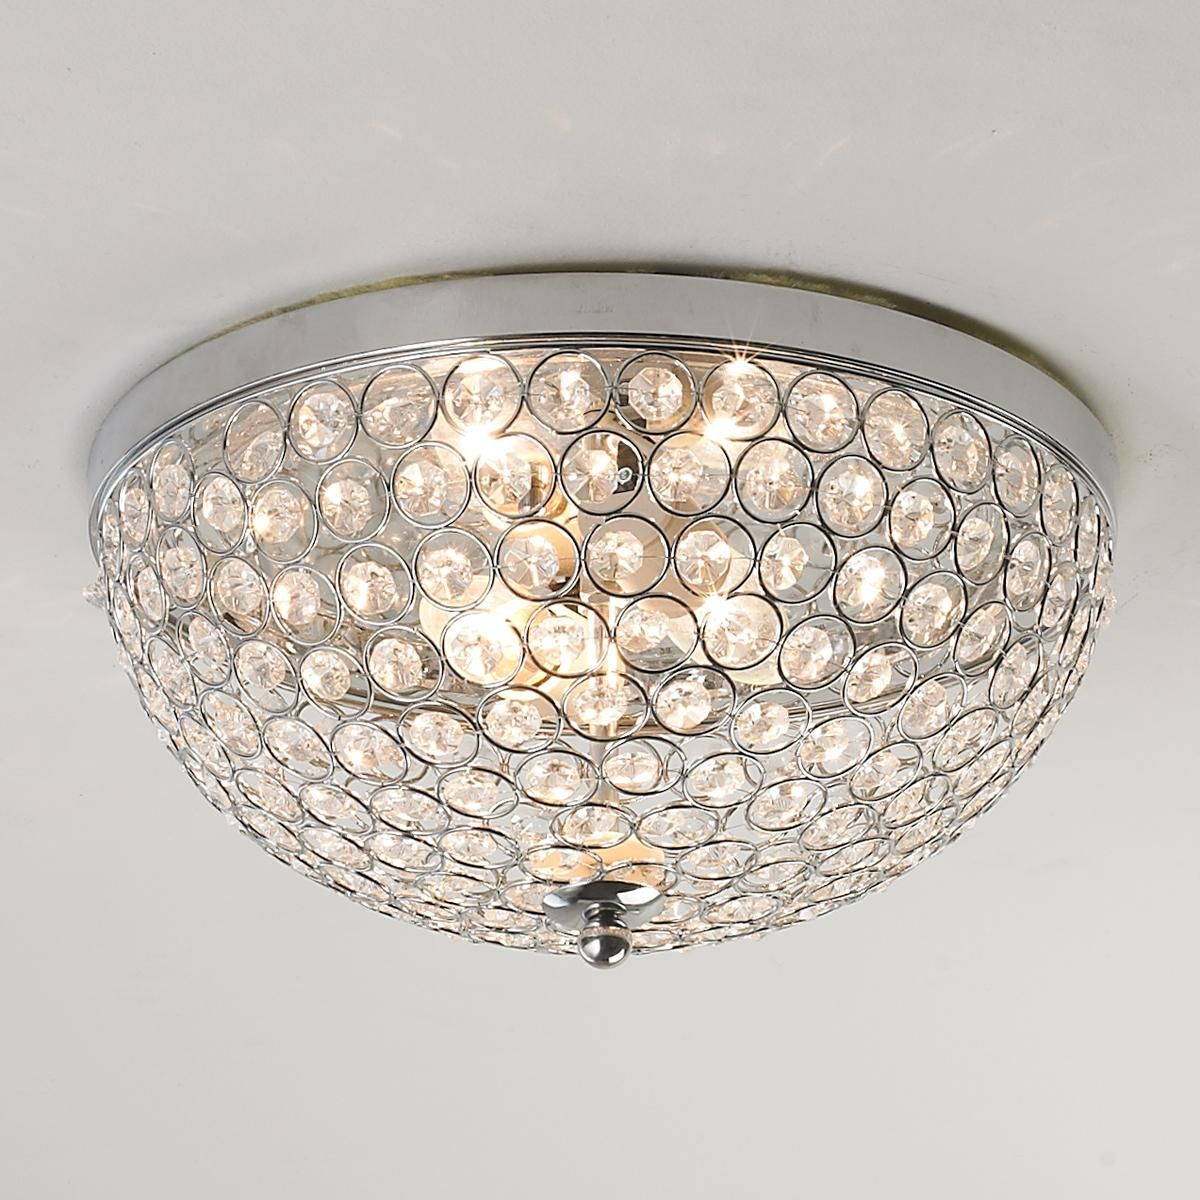 Crystal jewel ceiling light ceiling lights ceilings and reflection crystal jewel ceiling light aloadofball Gallery